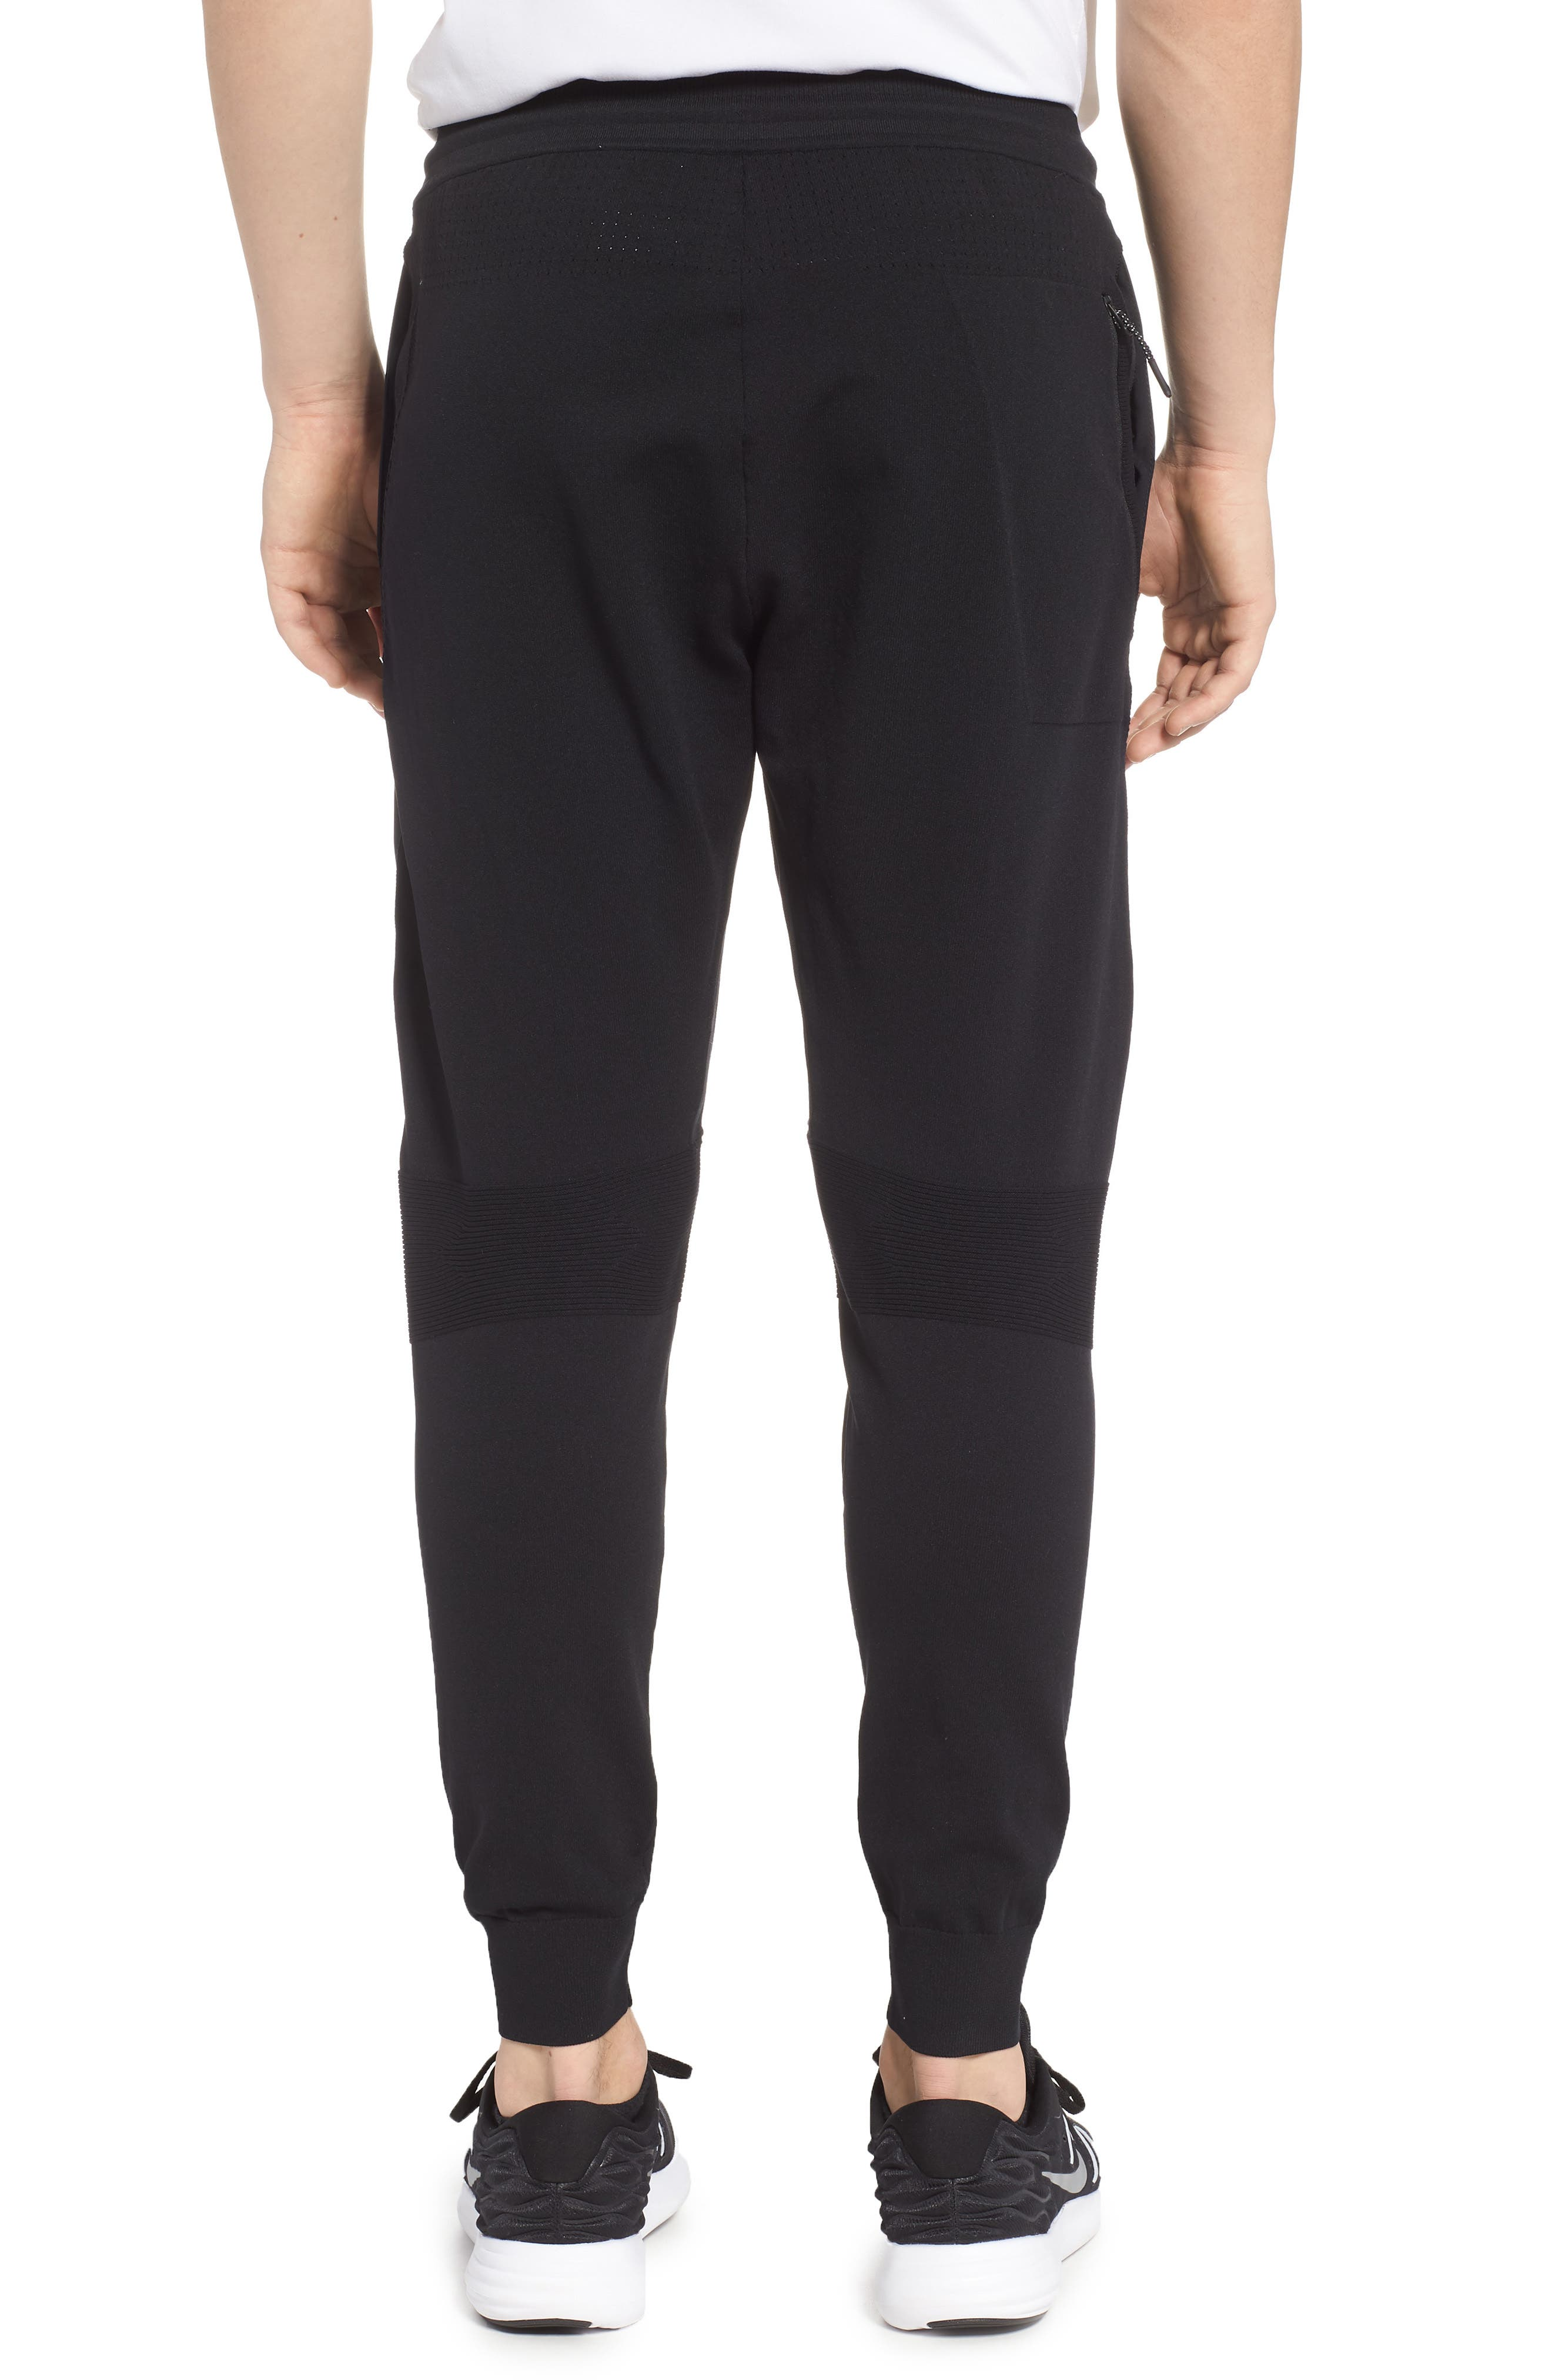 NSW Tech Knit Jogger Pants,                             Alternate thumbnail 2, color,                             010